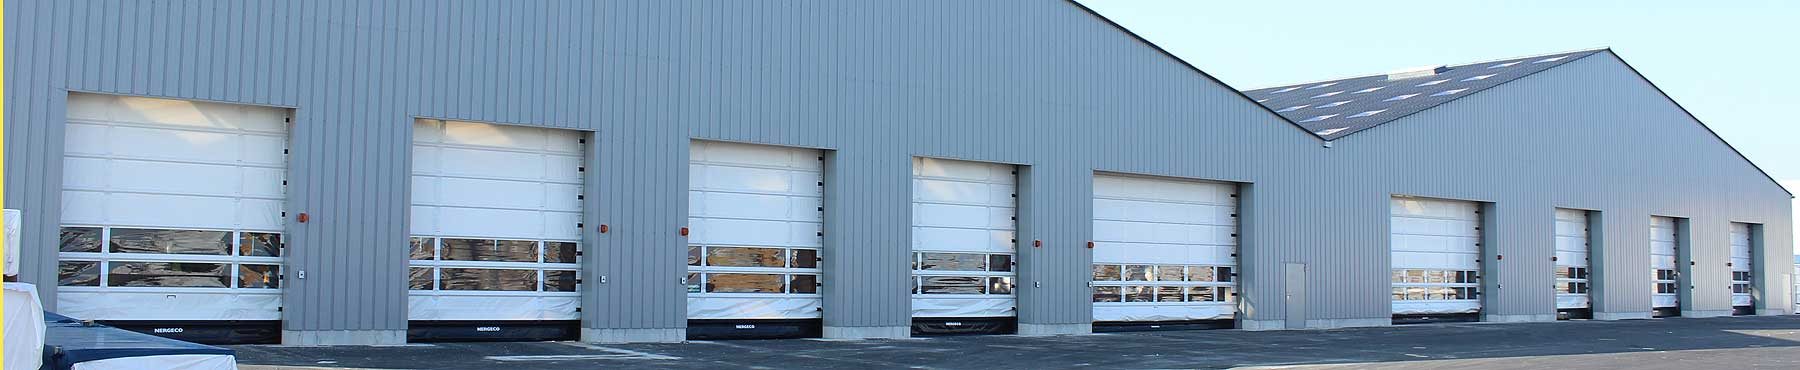 Fast acting doors for exterior